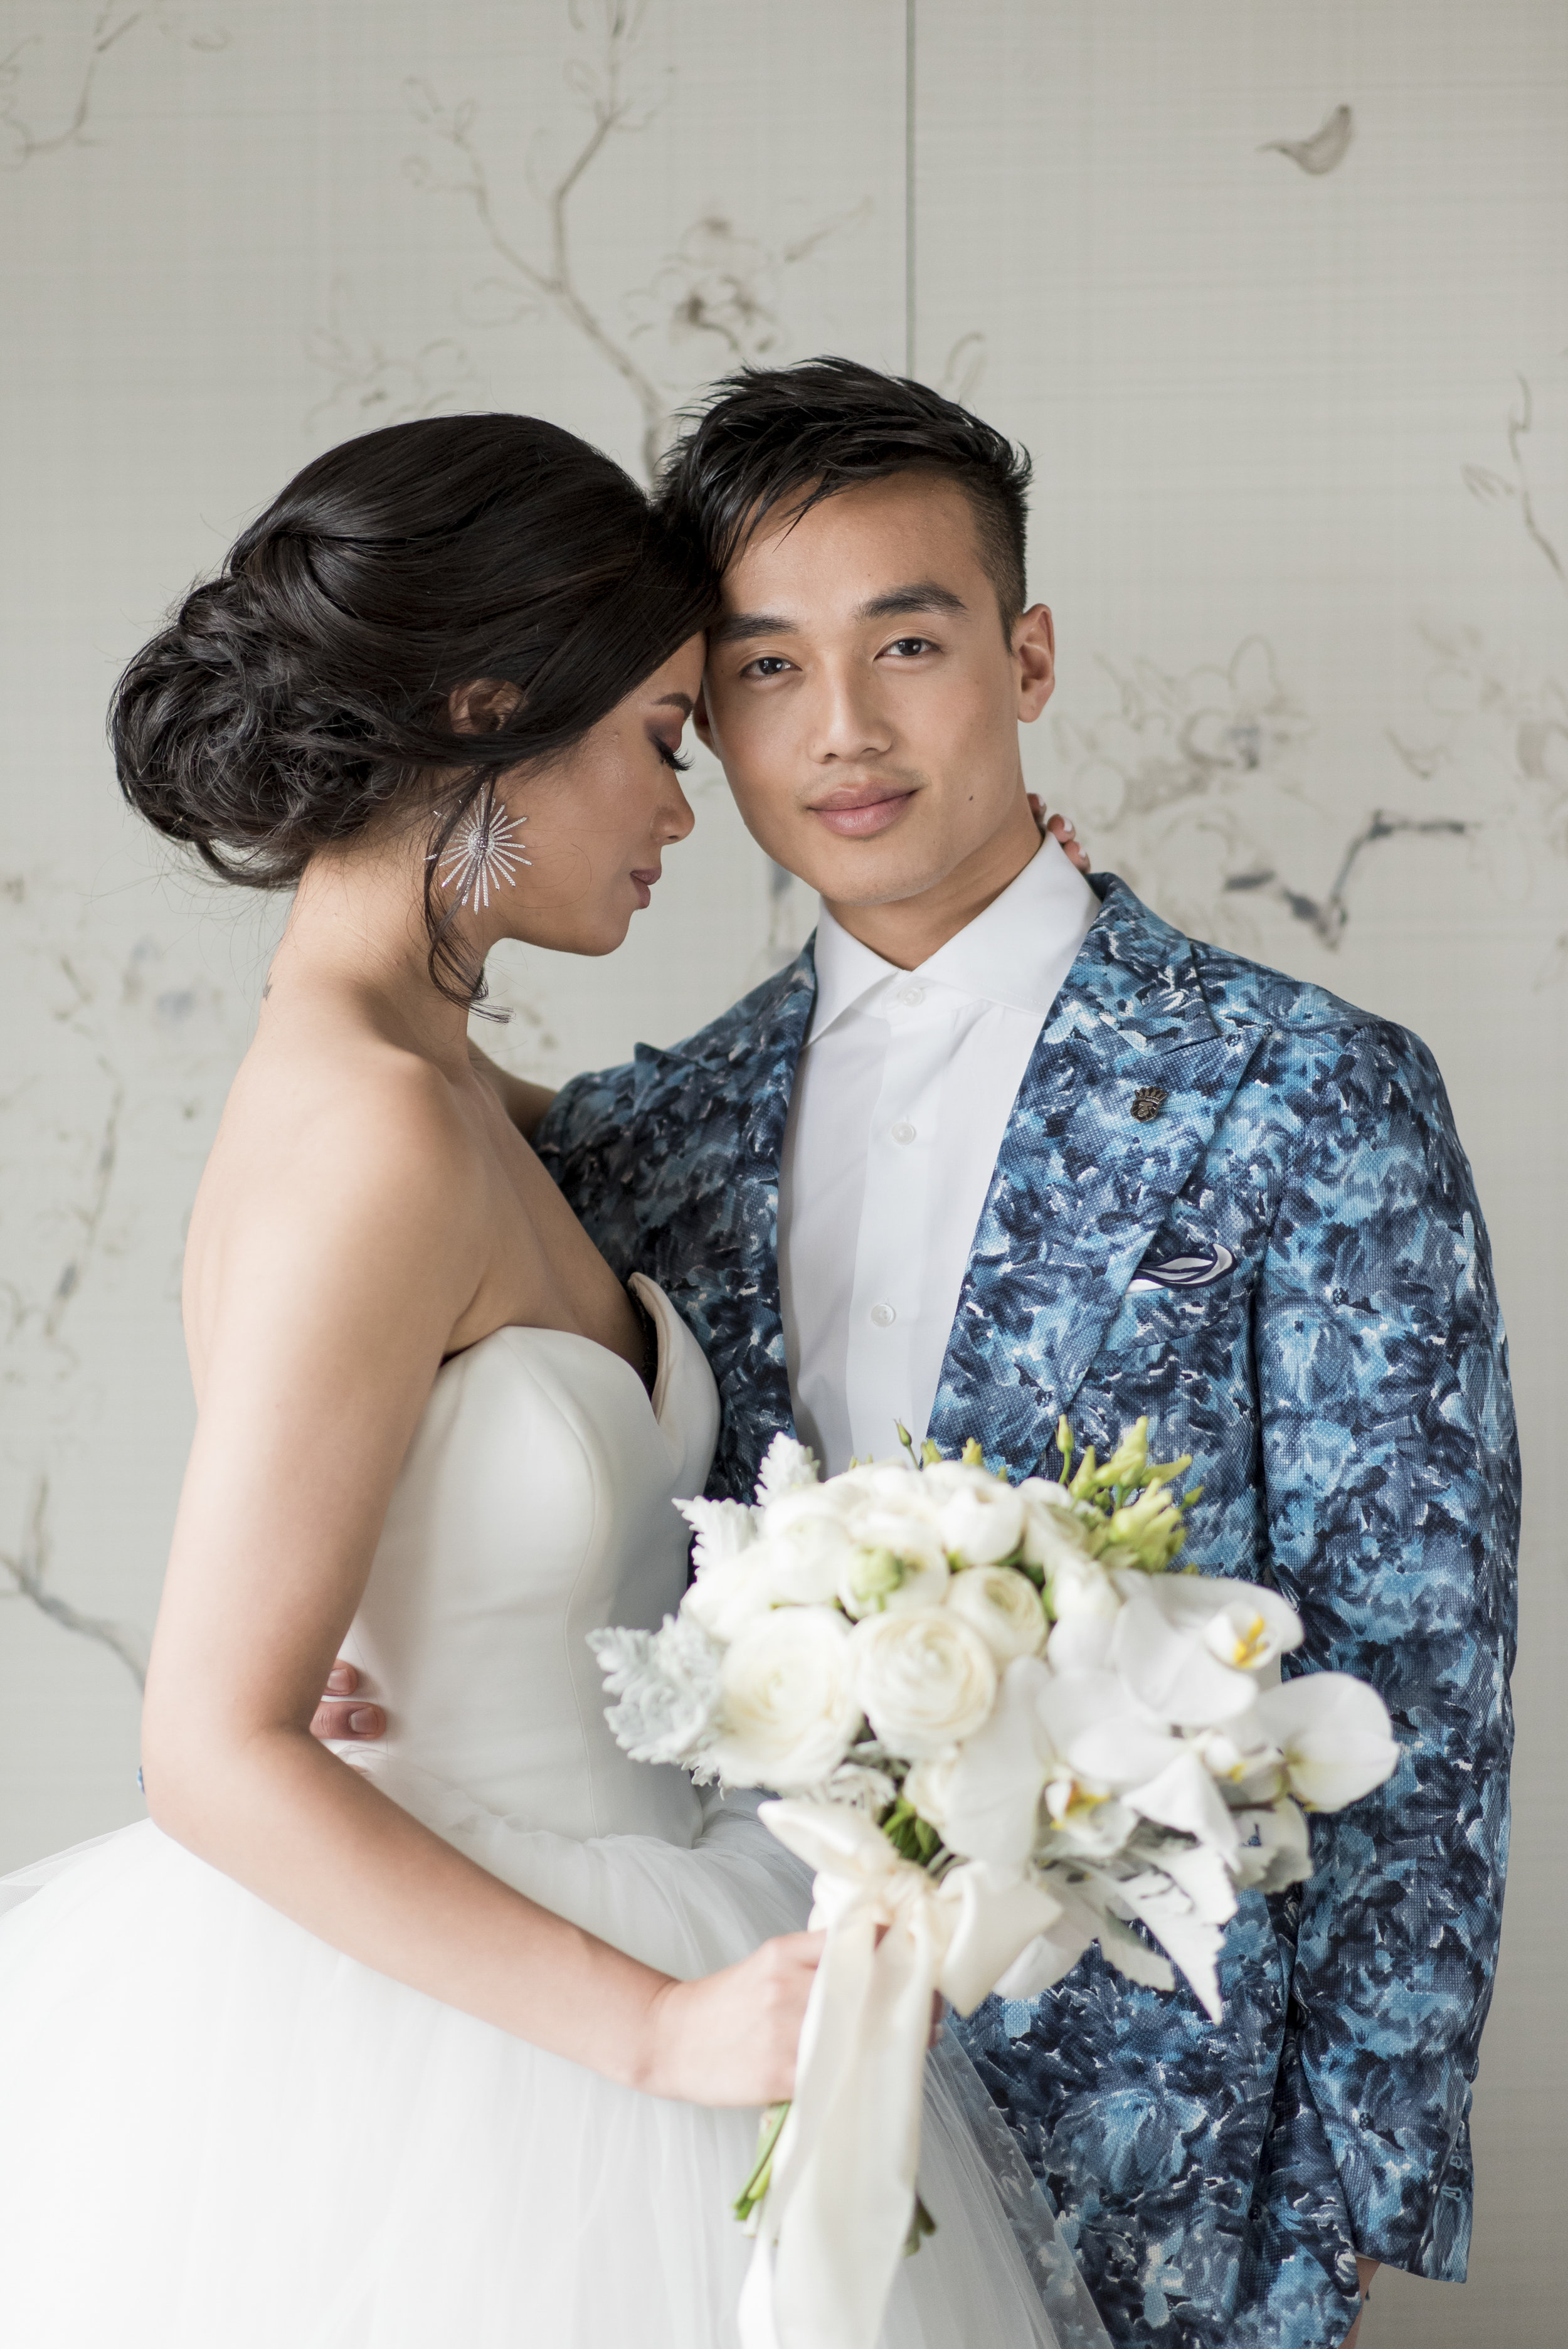 August In Bloom - Couple - The Suited Groom (The Bridal Affair)